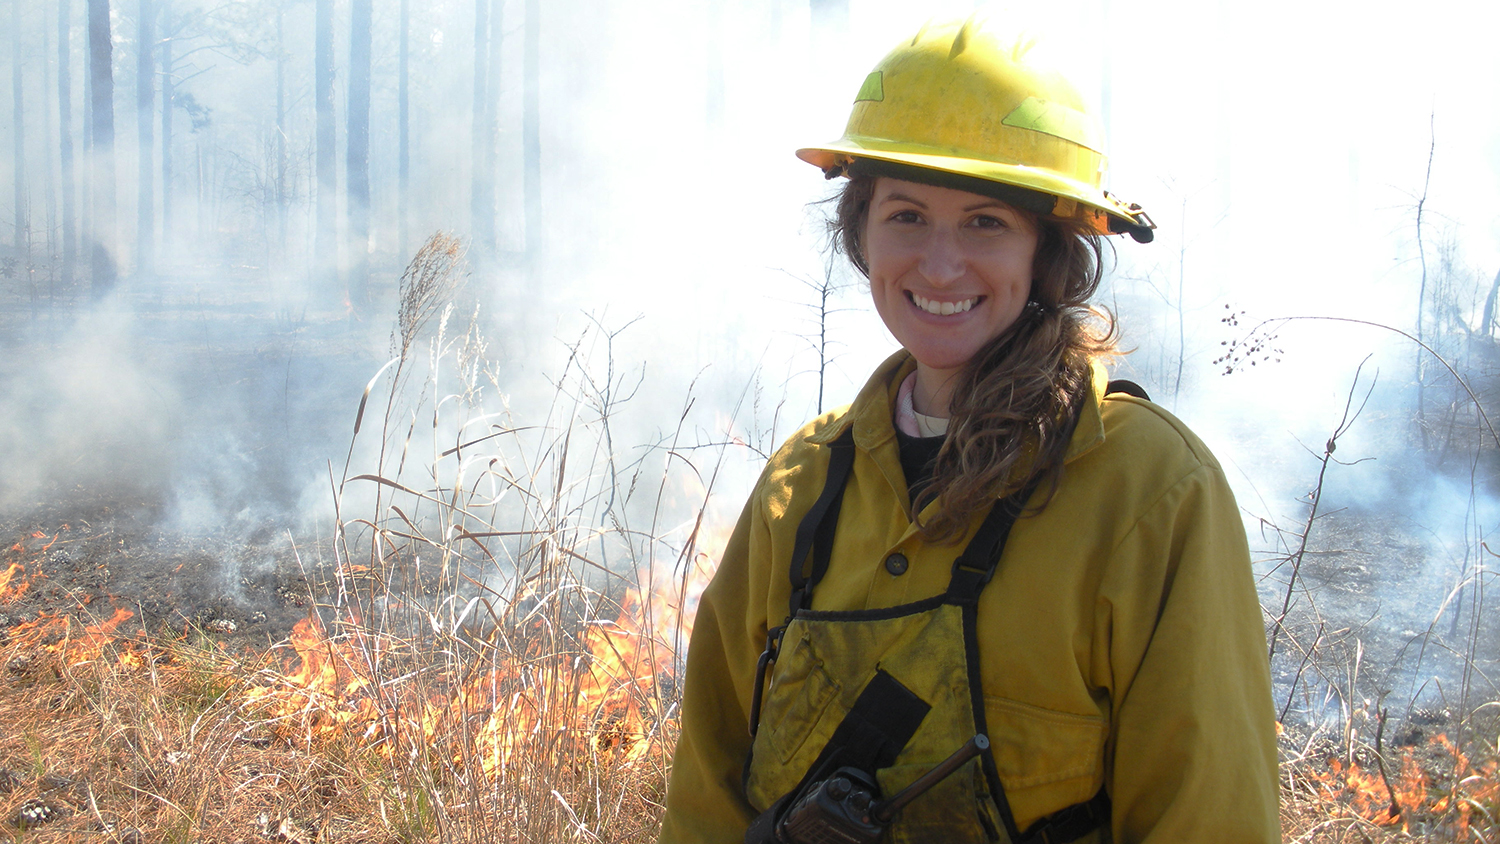 Jennifer Fawcett -Women in Forestry and Fire: Empowering Women through Land Management Education, College of Natural Resources